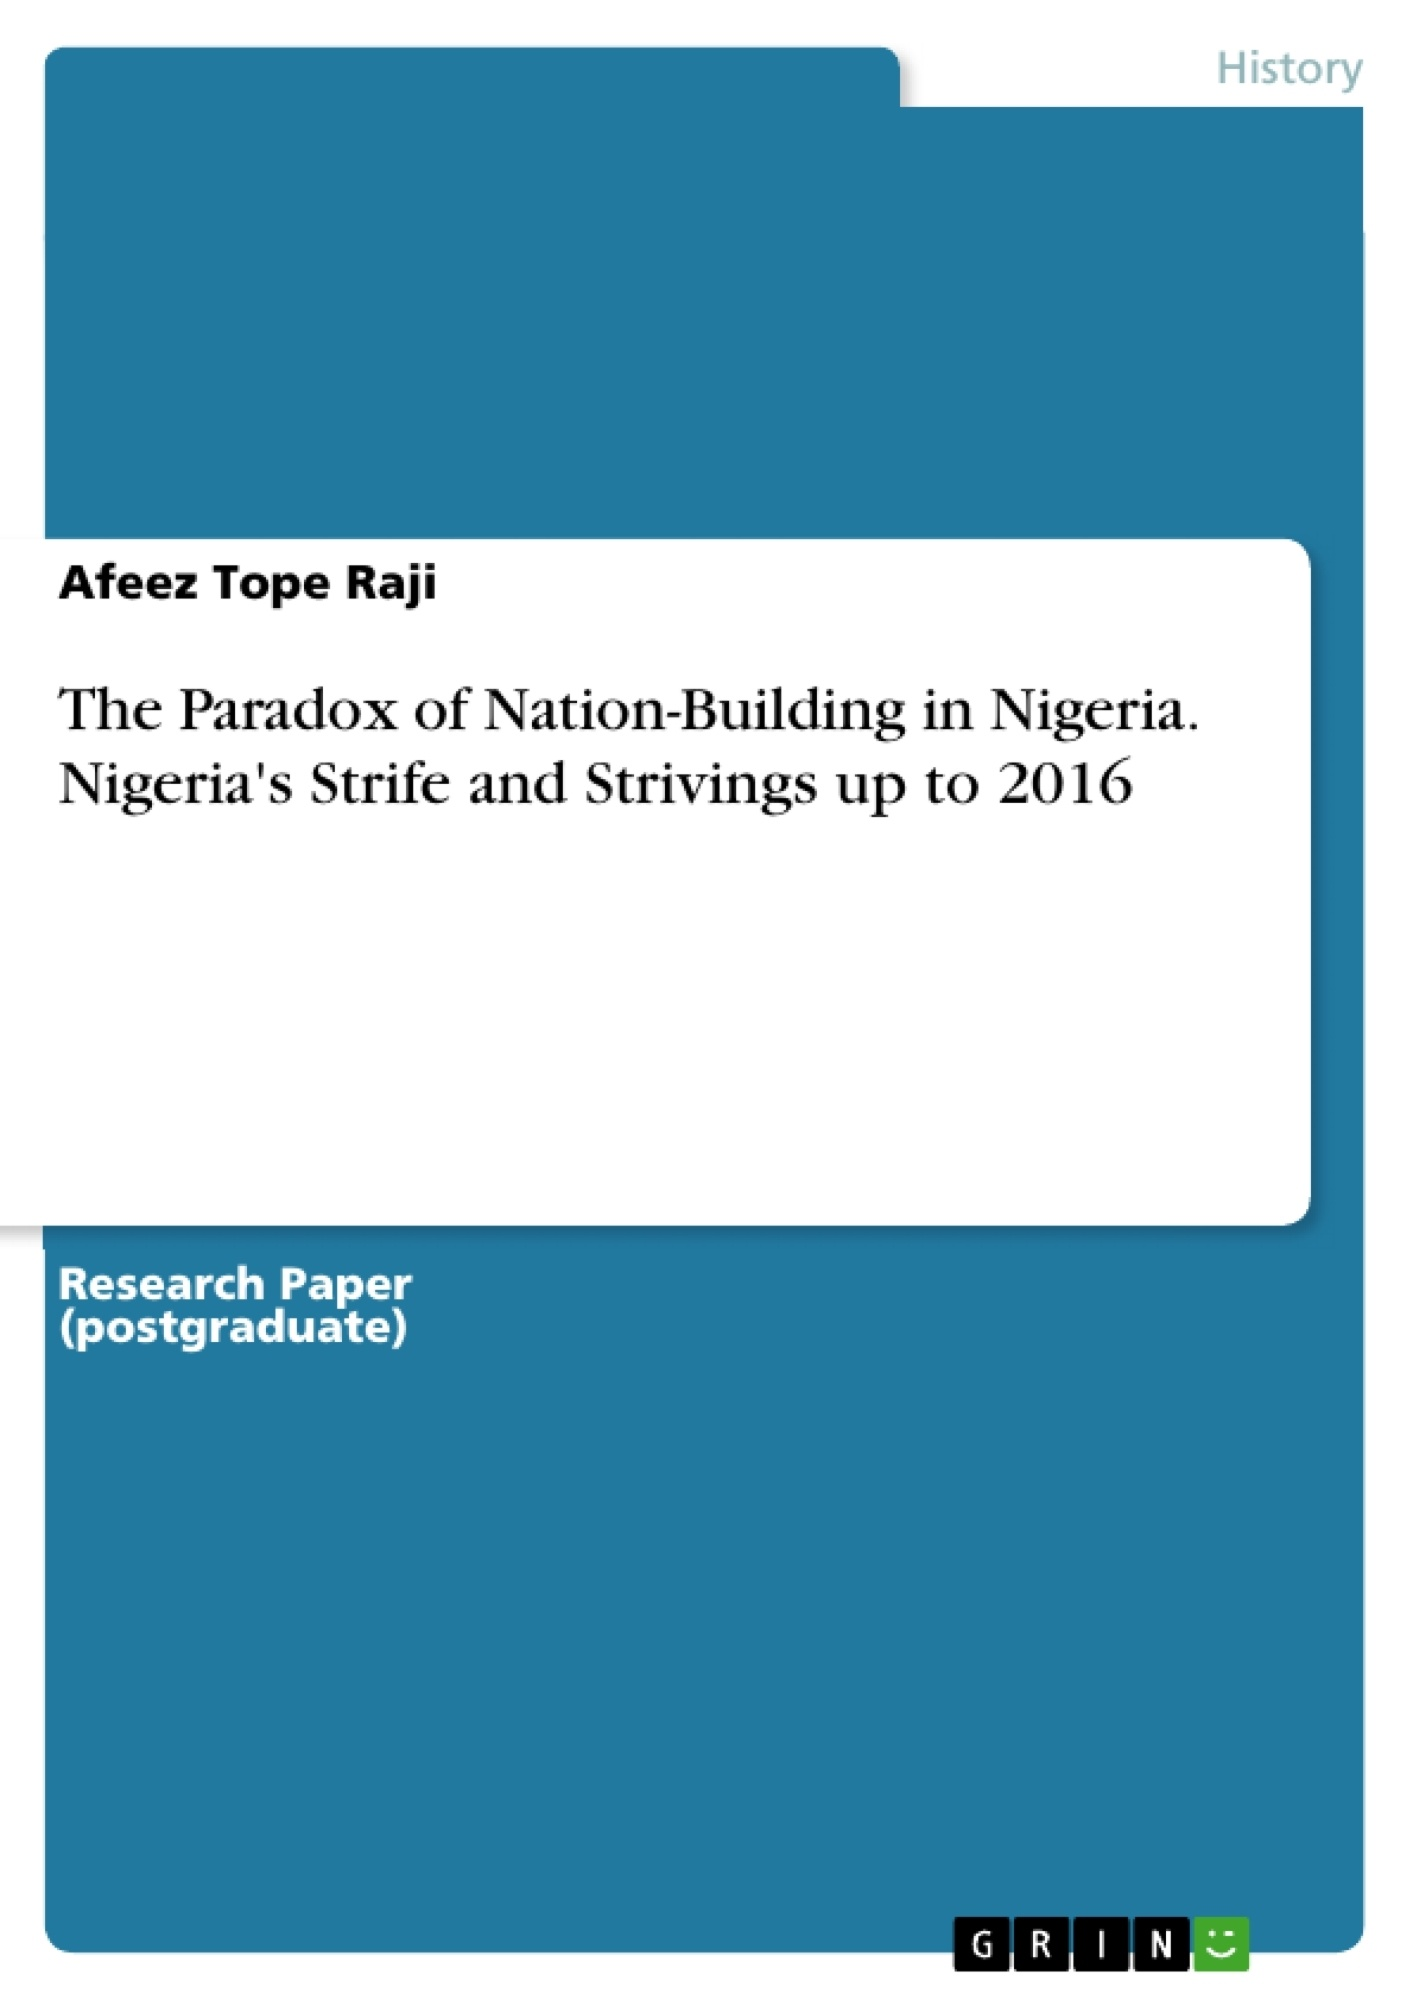 Title: The Paradox of Nation-Building in Nigeria. Nigeria's Strife and Strivings up to 2016